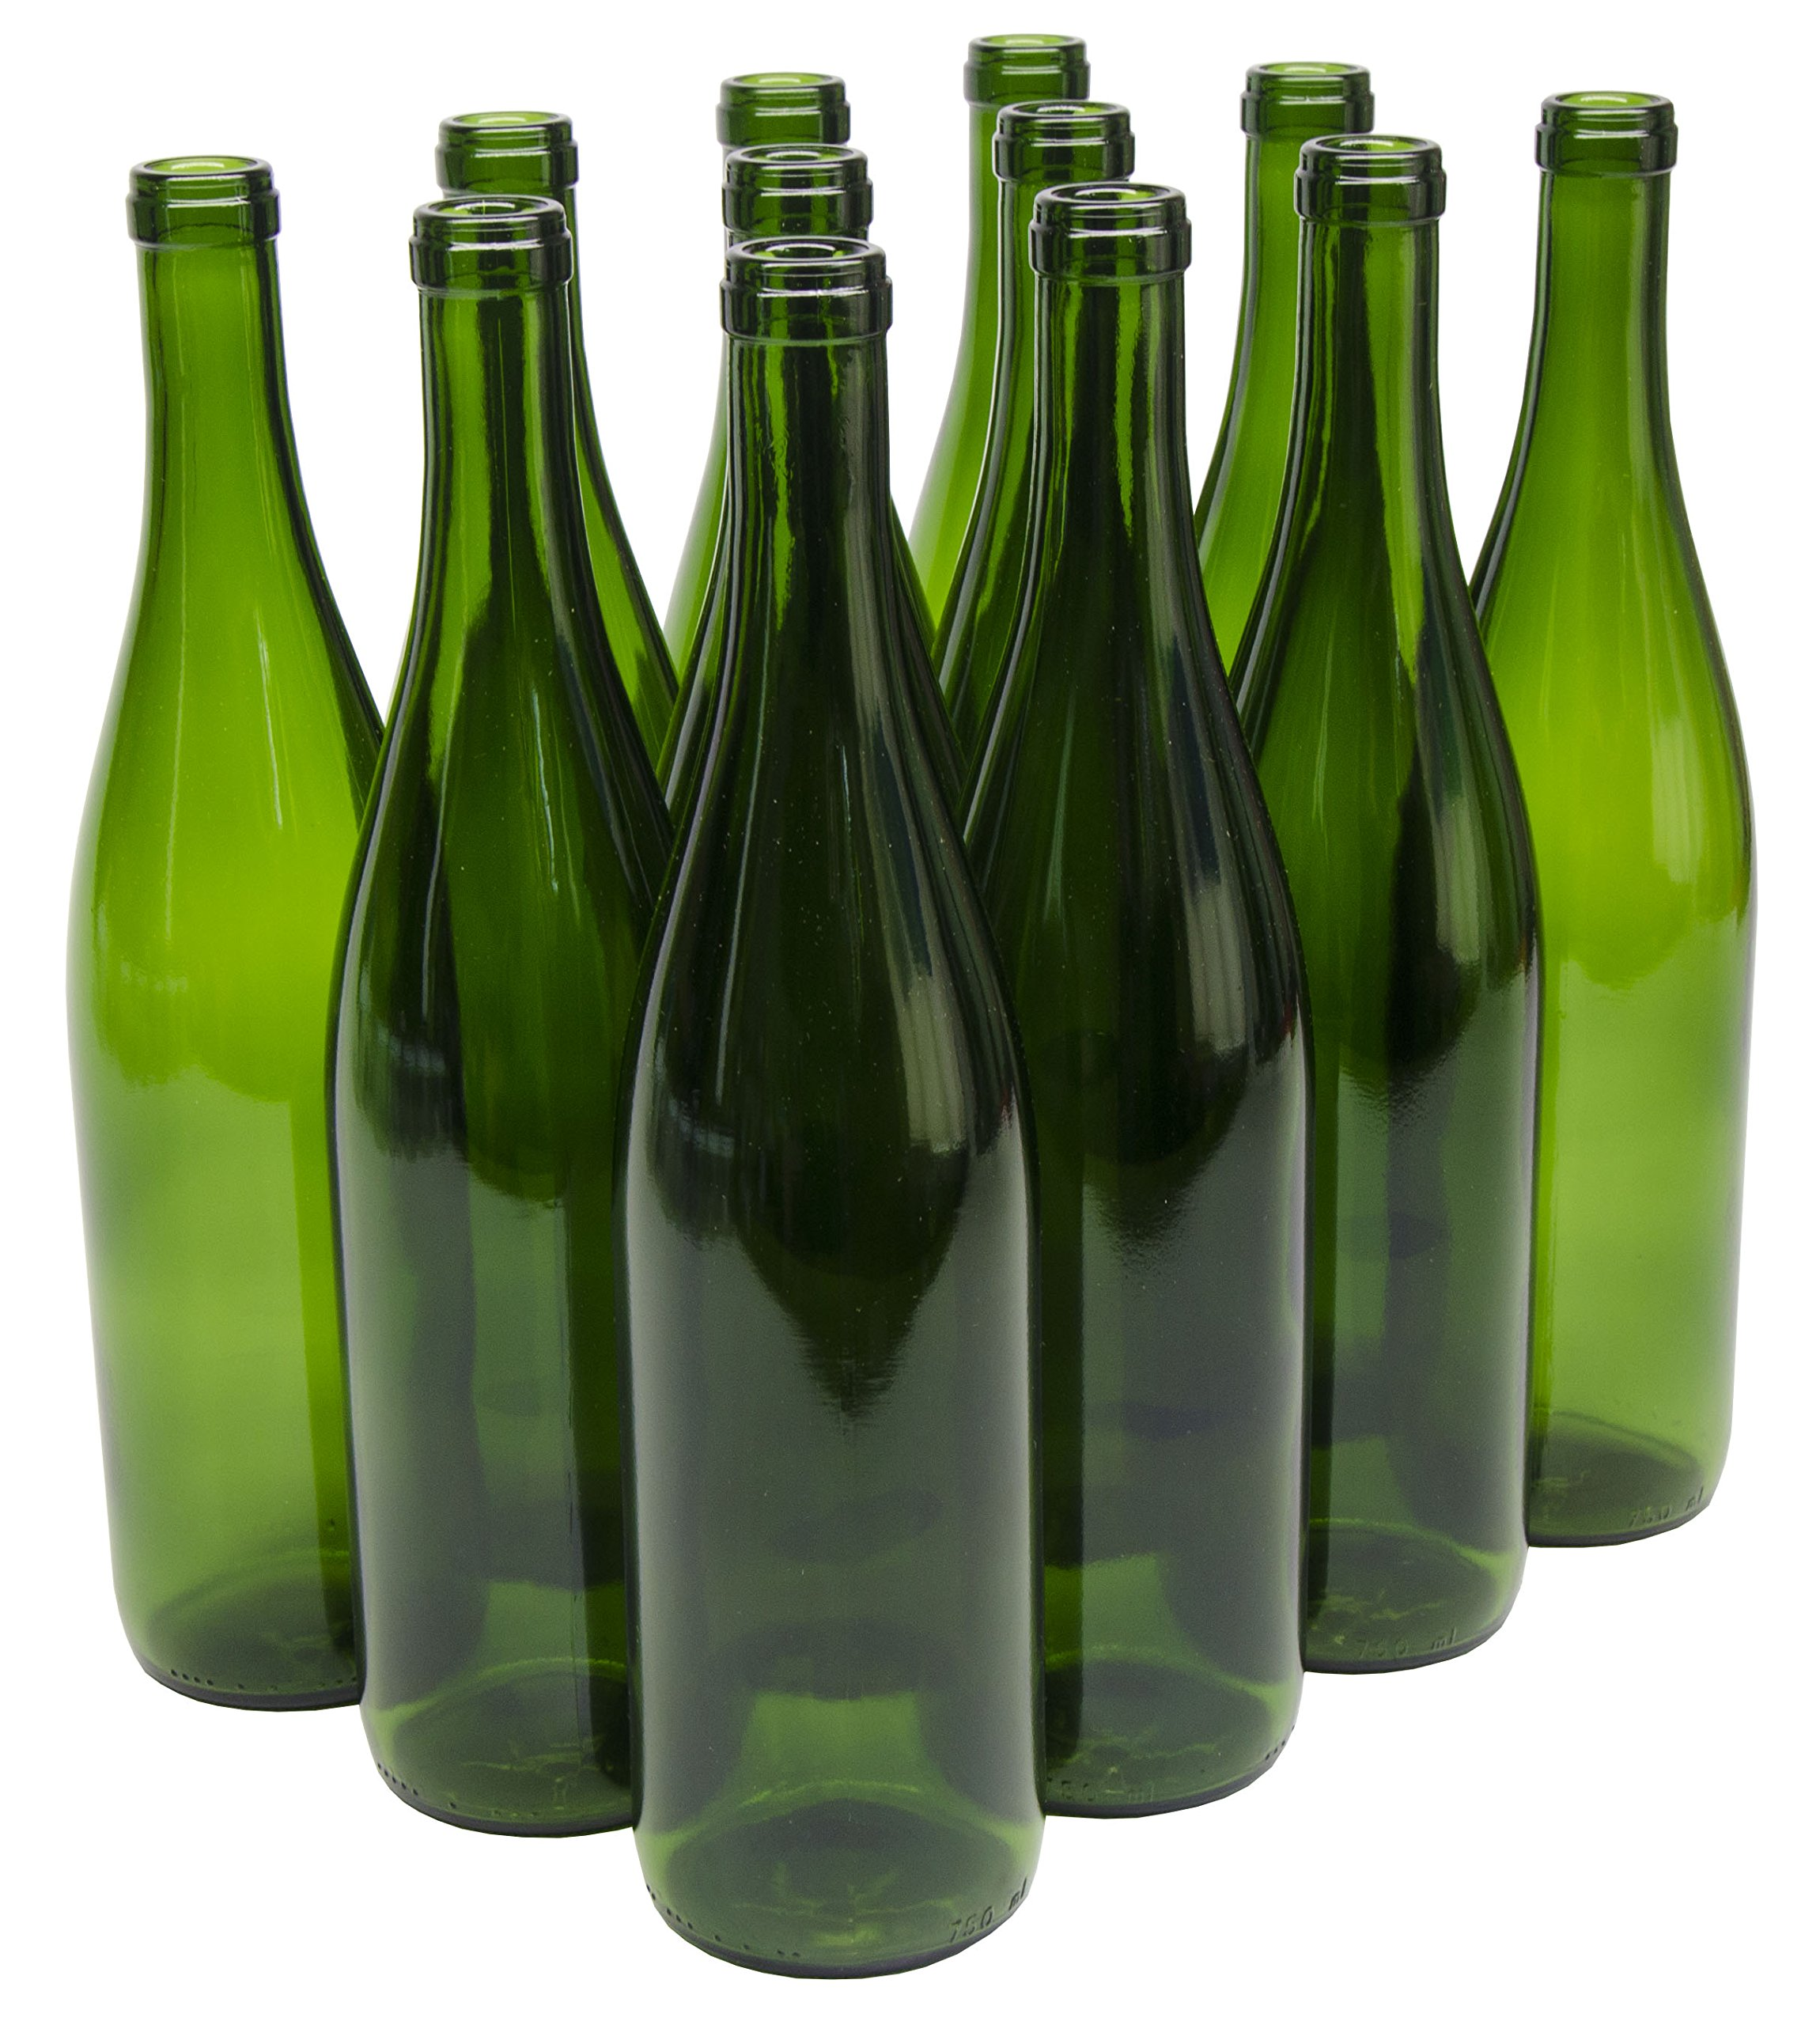 North Mountain Supply 750ml Glass California Hock Wine Bottle Flat-Bottomed Cork Finish - Case of 12 - Champagne Green